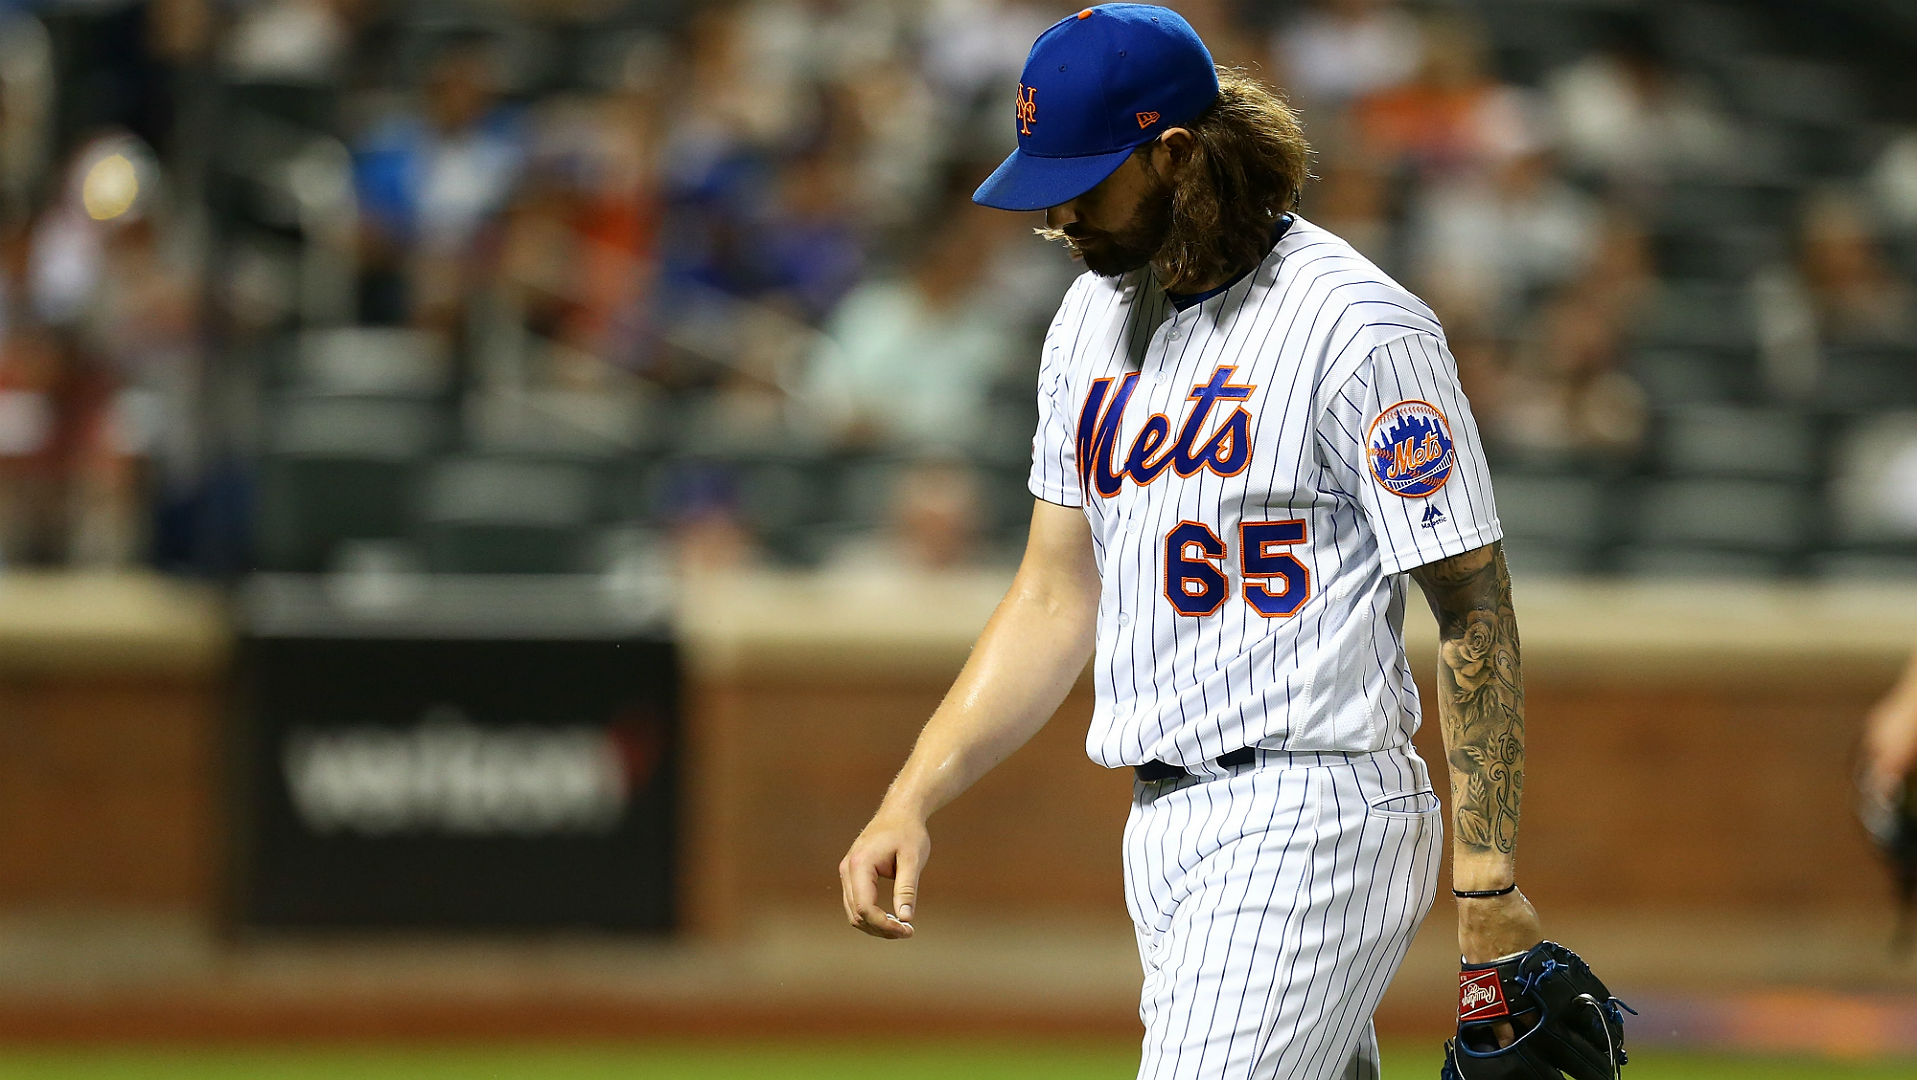 Mets injury updates: Robert Gsellman could be out for season; Jed Lowrie begins rehab assignment